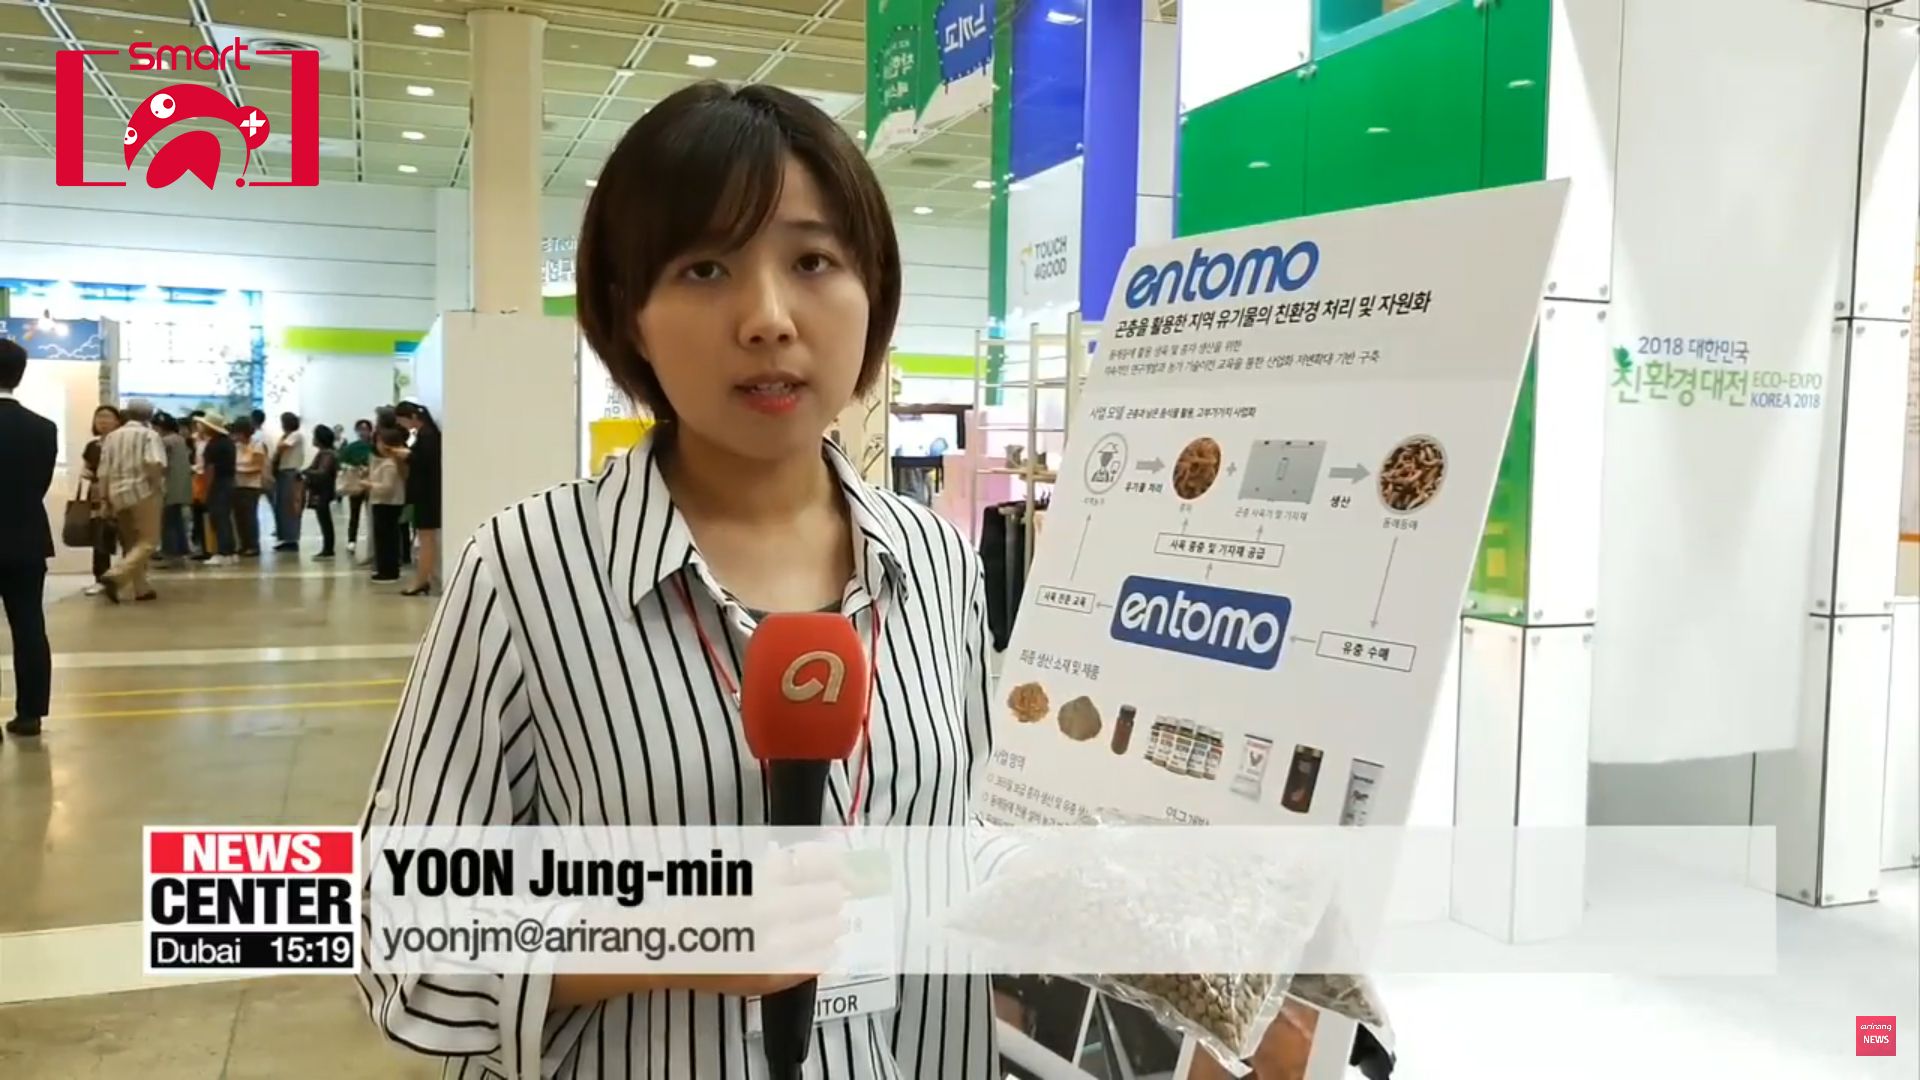 [Smart A+] Eco-Expo Korea 2018 projects ways to go green